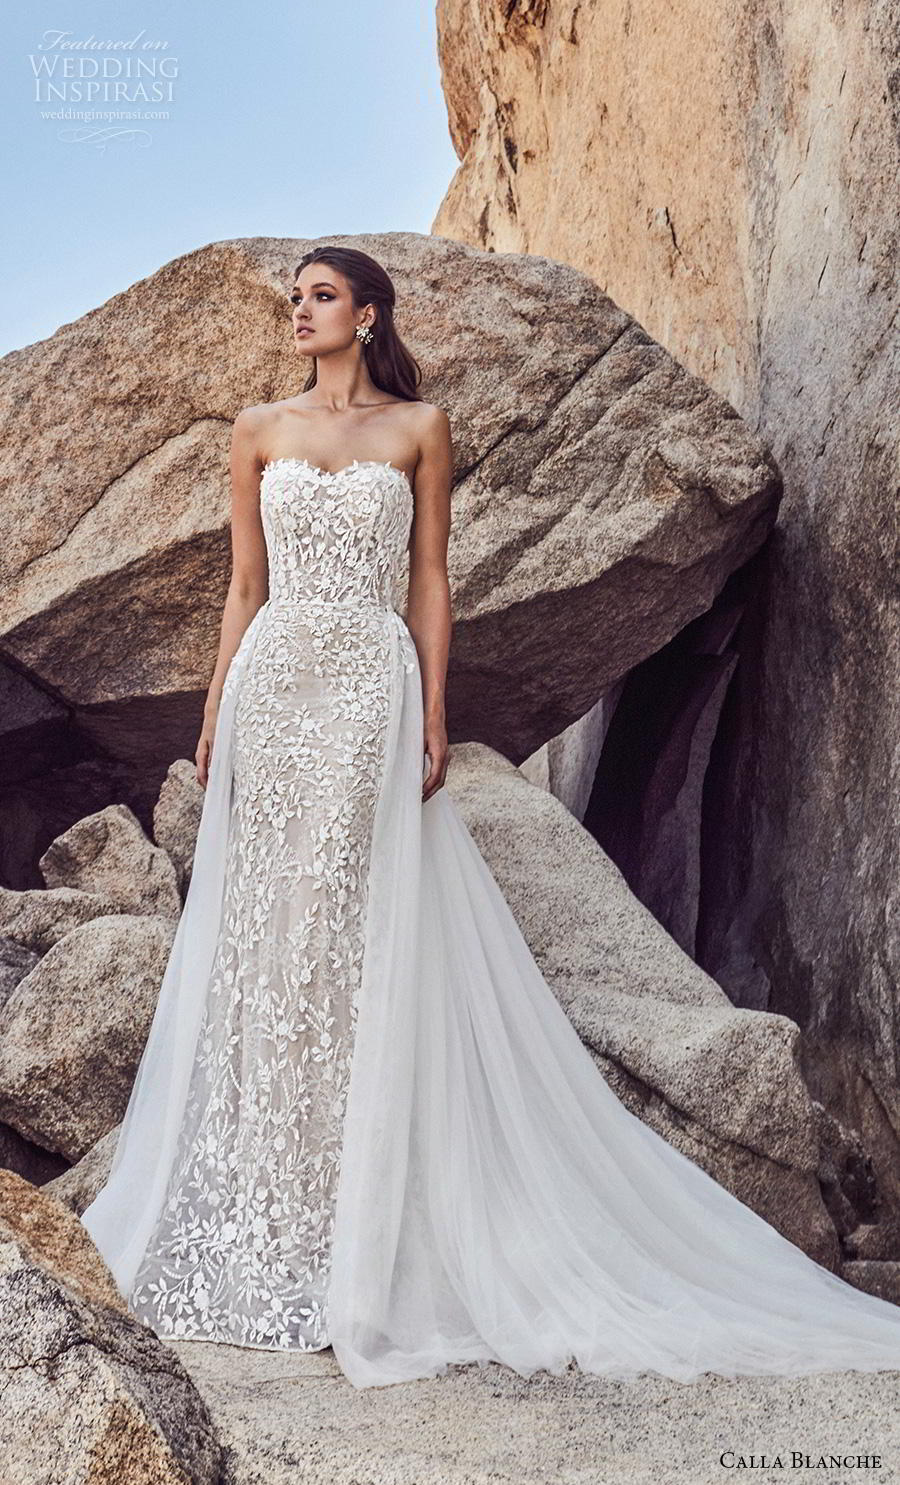 104828127f36f calla blanche spring 2019 bridal strapless sweetheart neckline full  embellishment elegant fit and flare wedding dress .